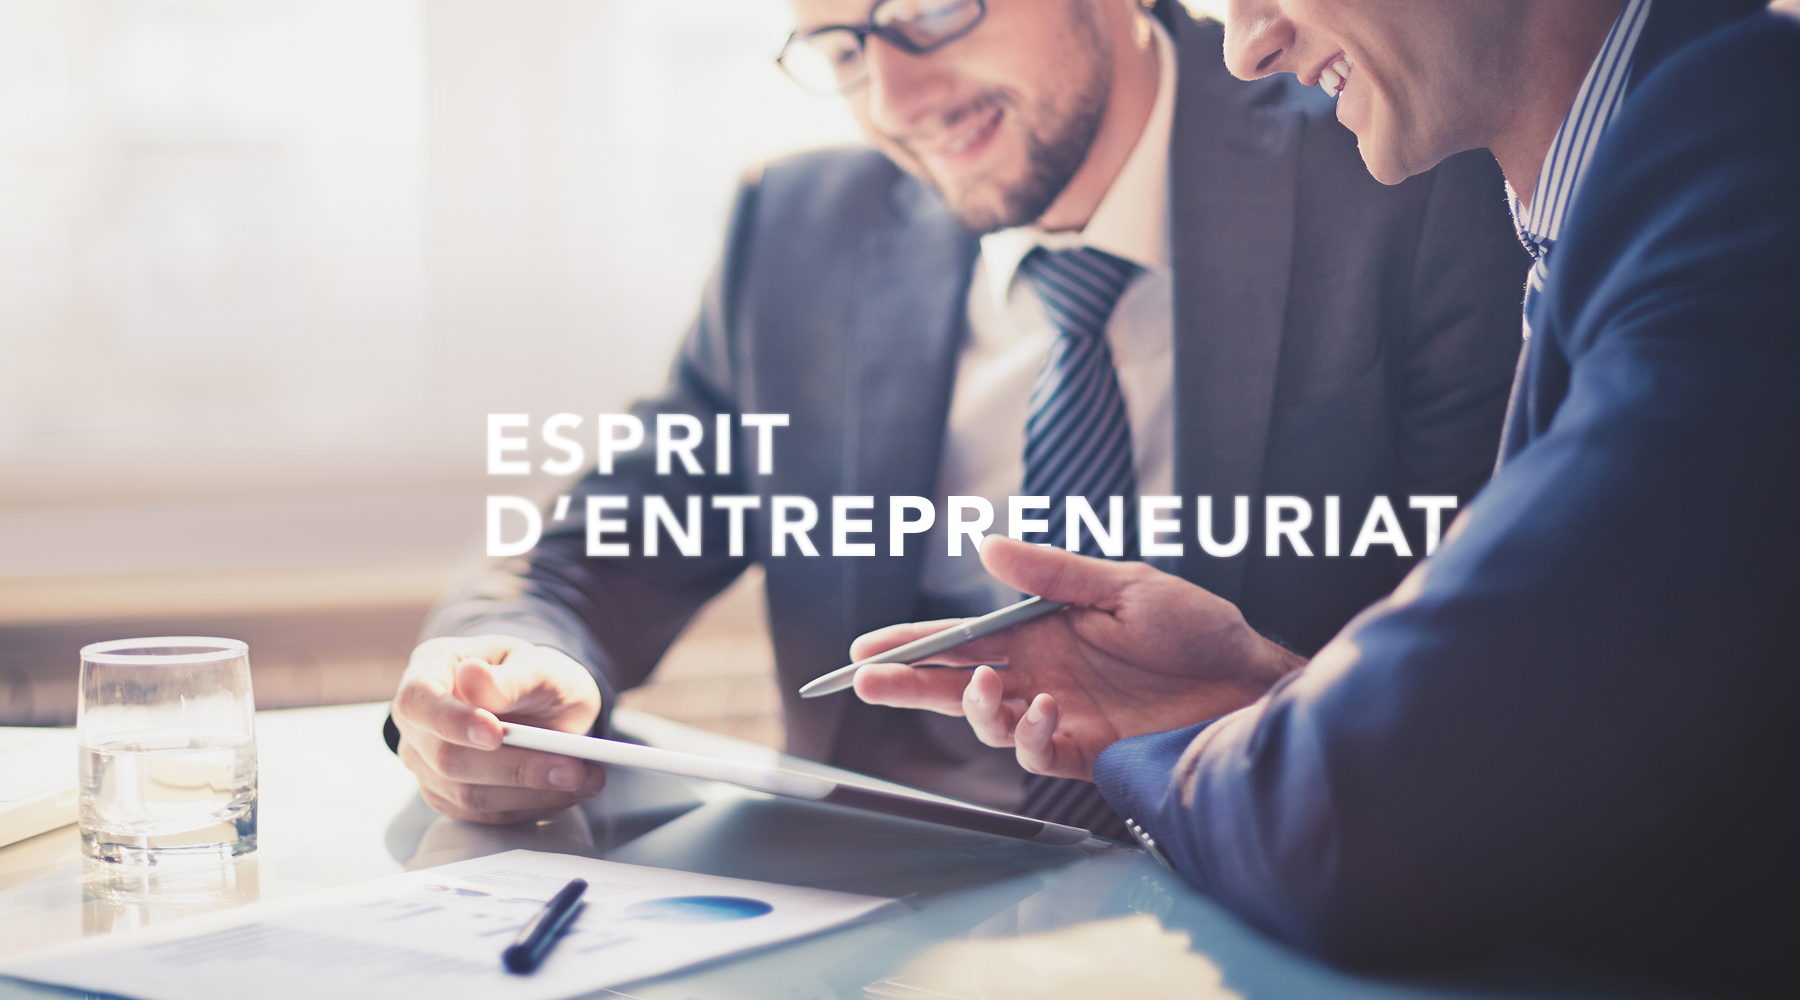 Entreprenmeurial4_FR.png